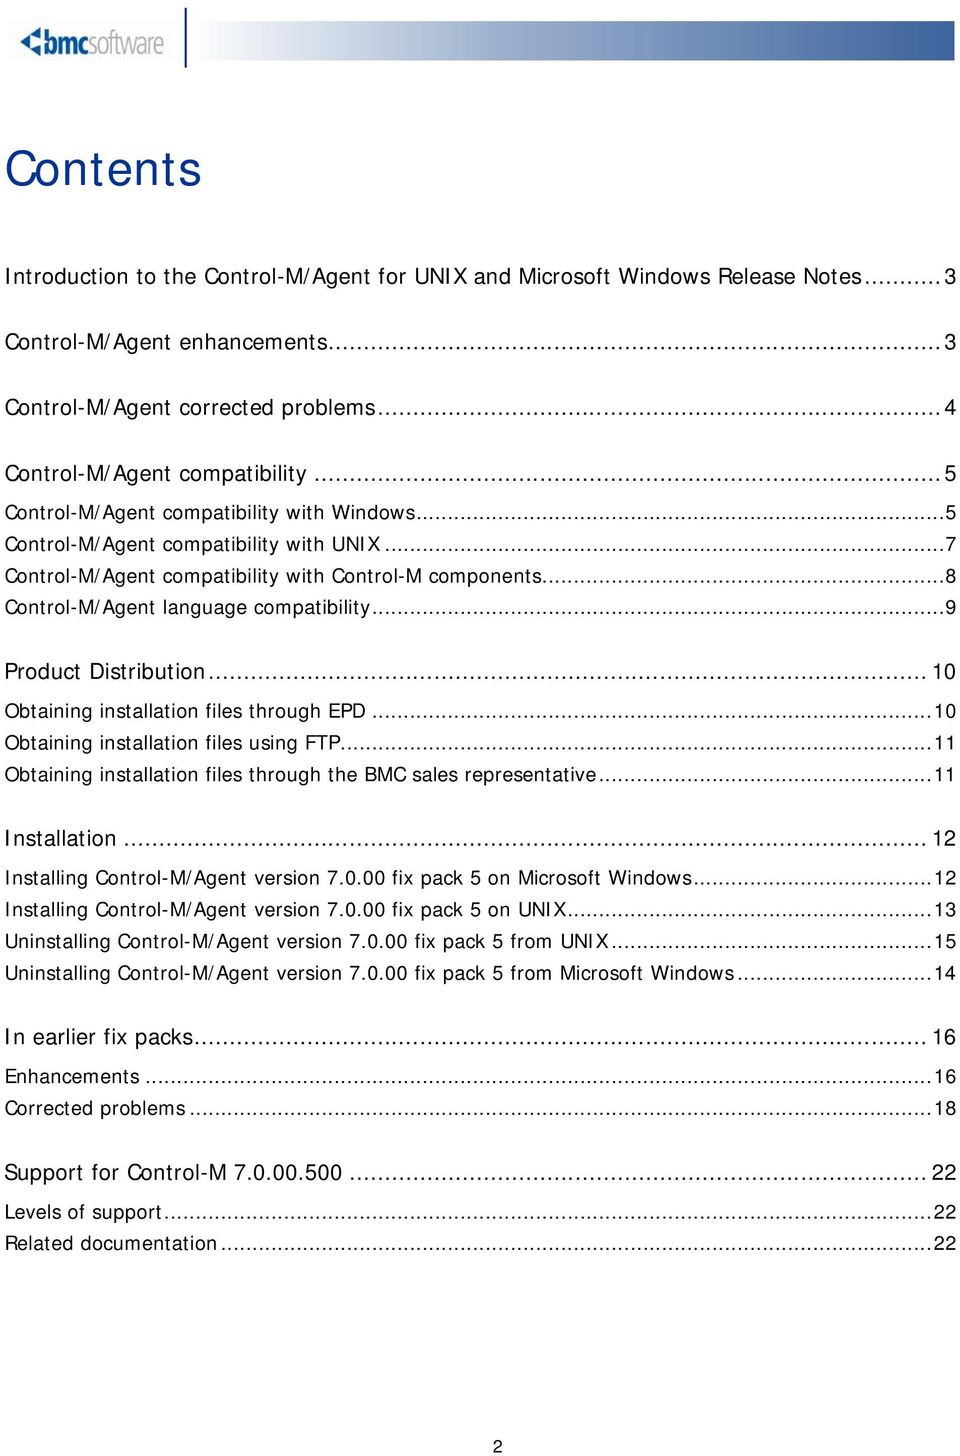 m for unix and microsoft windows release